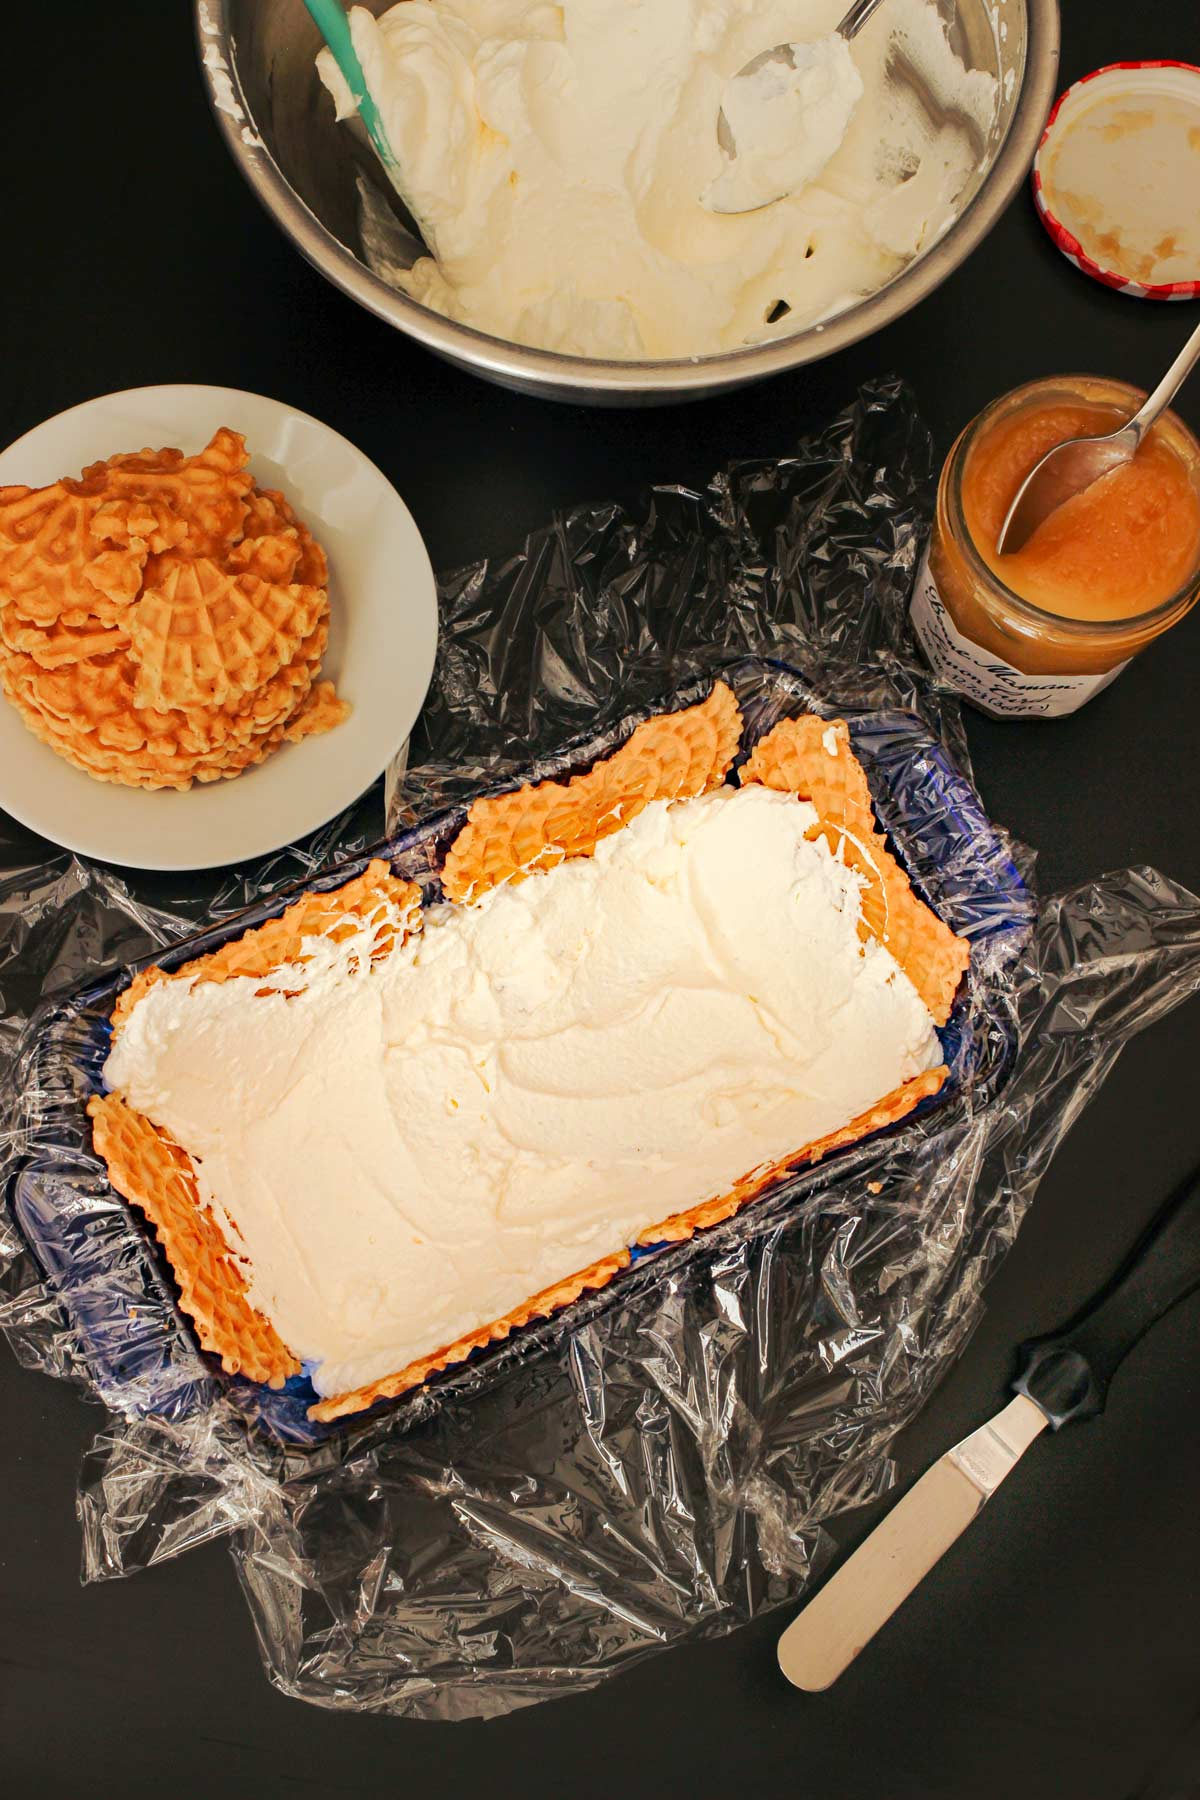 a layer of whipped cream spread over the pizzelles in the pan.